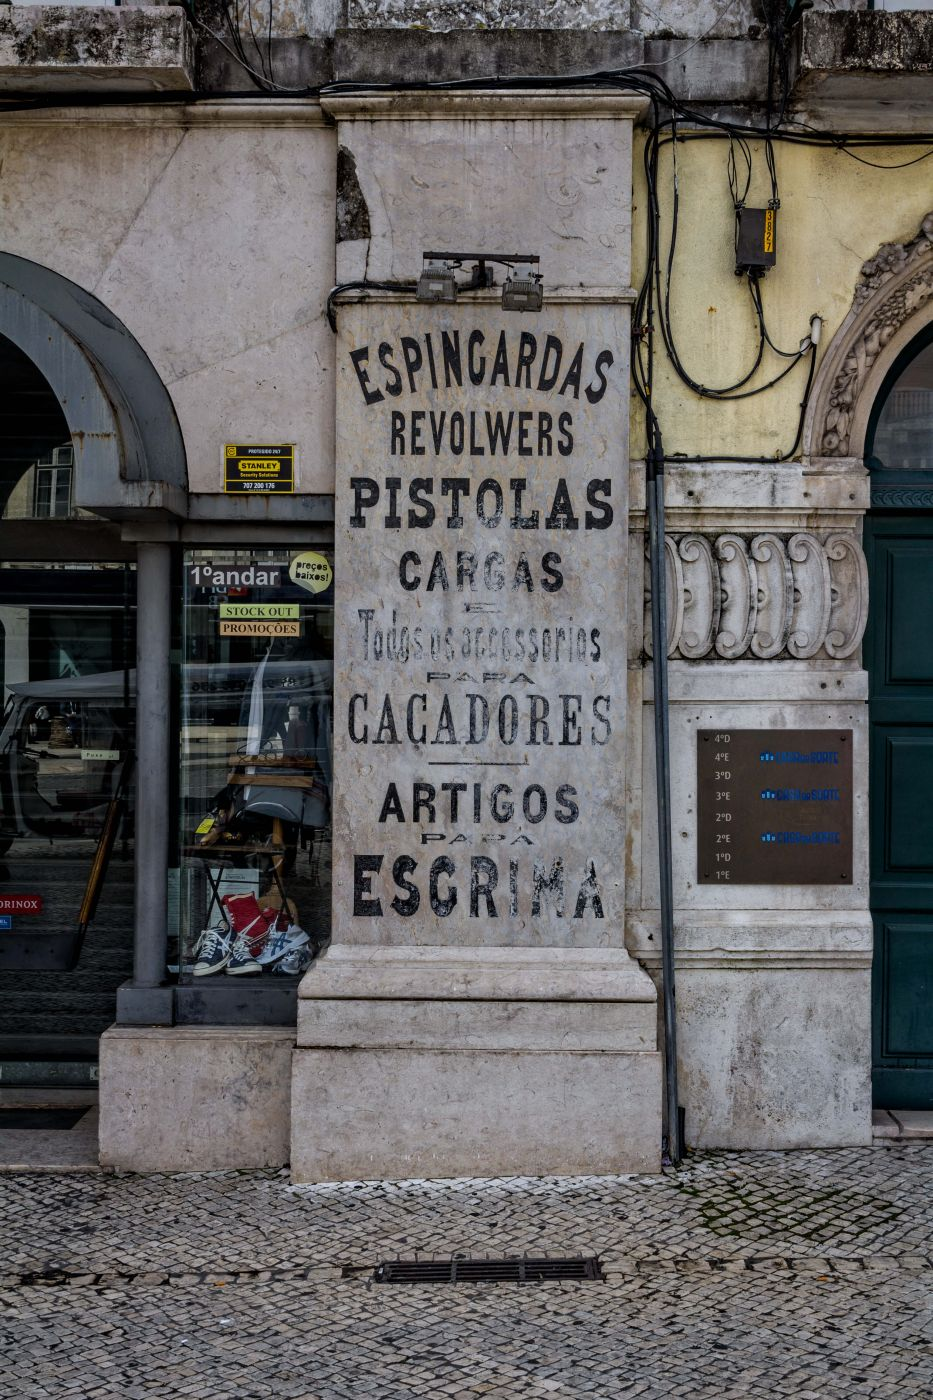 Weapons store in Lisbon, Portugal